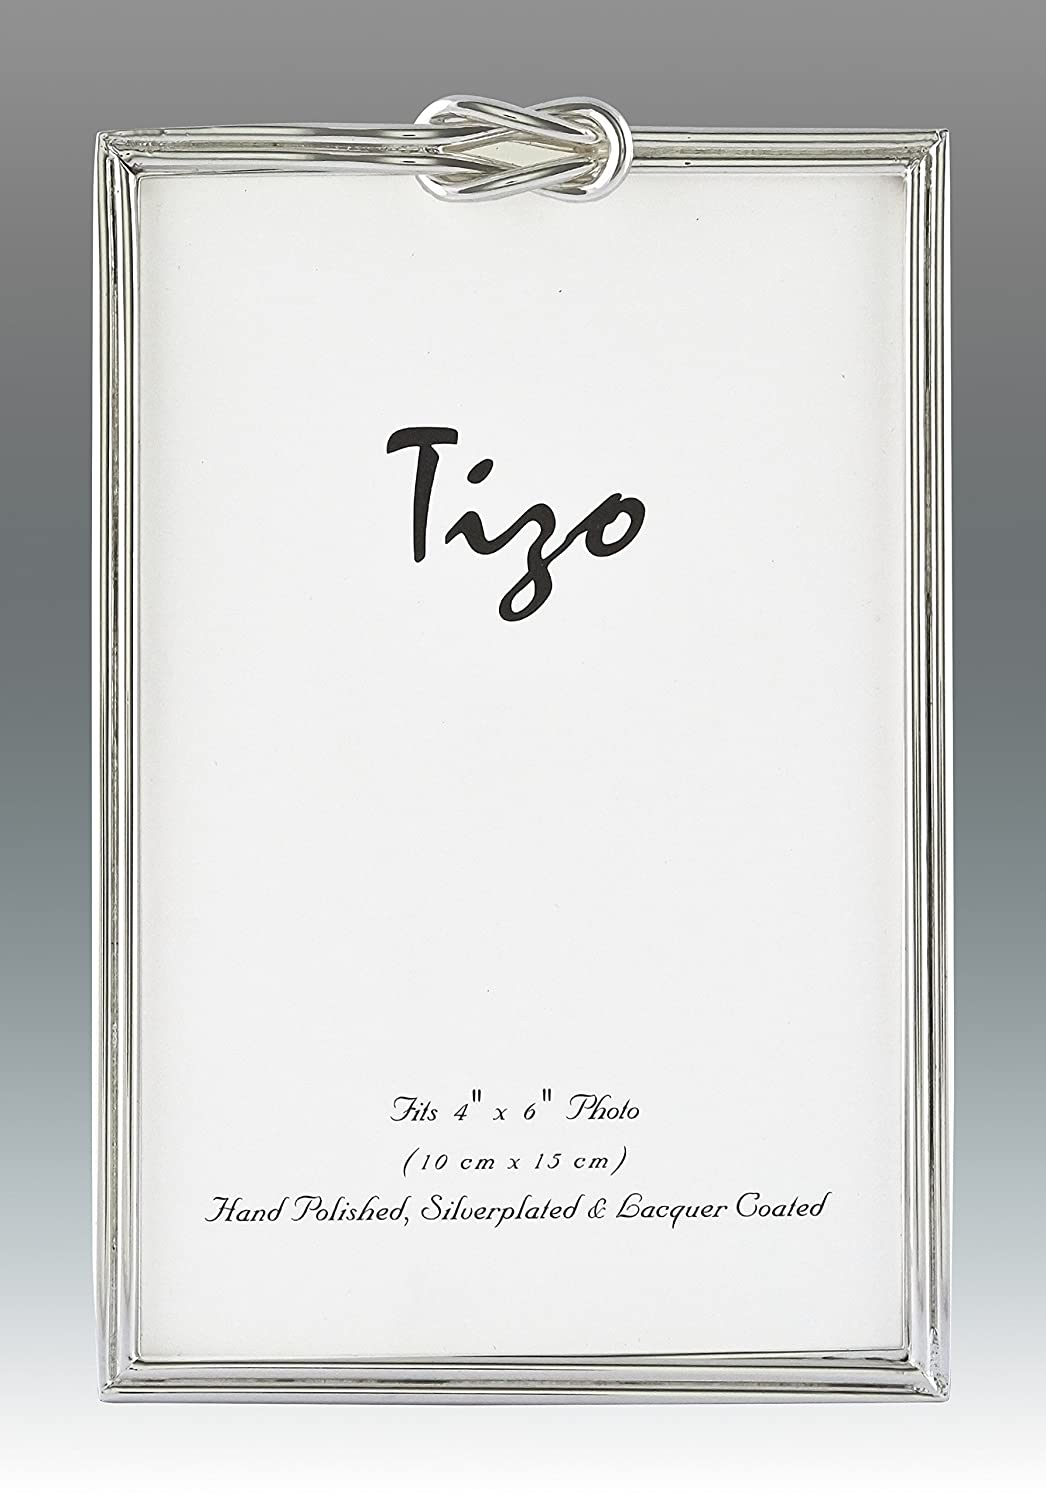 Amazon tizo 5 x 7 sterling silver plated picture frame amazon tizo 5 x 7 sterling silver plated picture frame with square knot border jeuxipadfo Choice Image